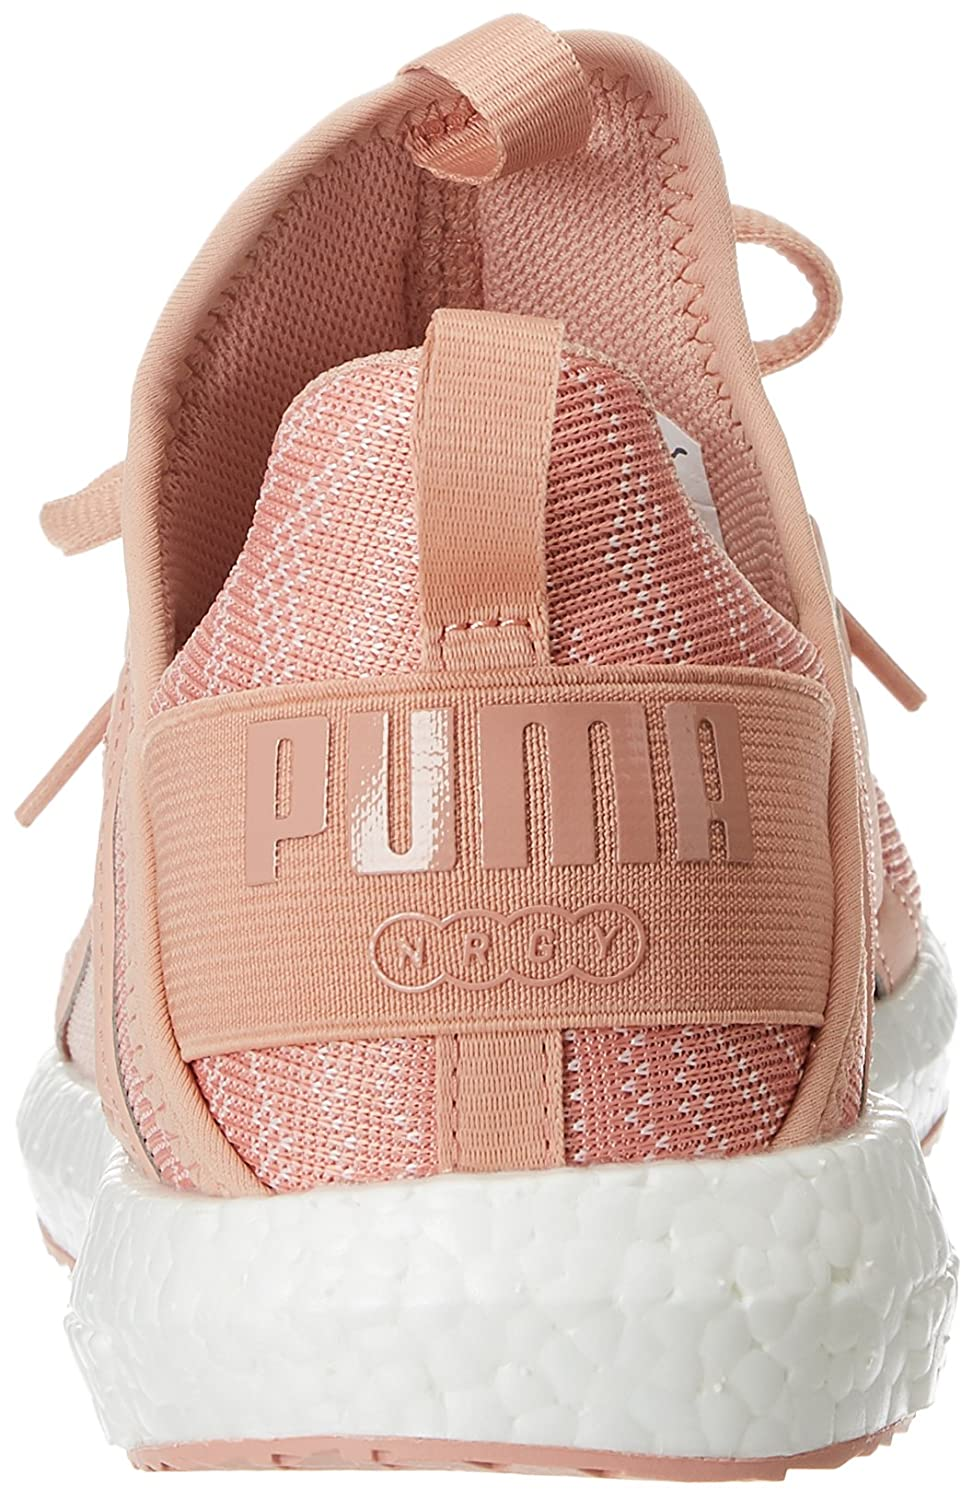 Puma Damen Mega Cross-Trainer NRGY Zebra WN's Cross-Trainer Mega Pink (Pearl-peach Beige) 507546